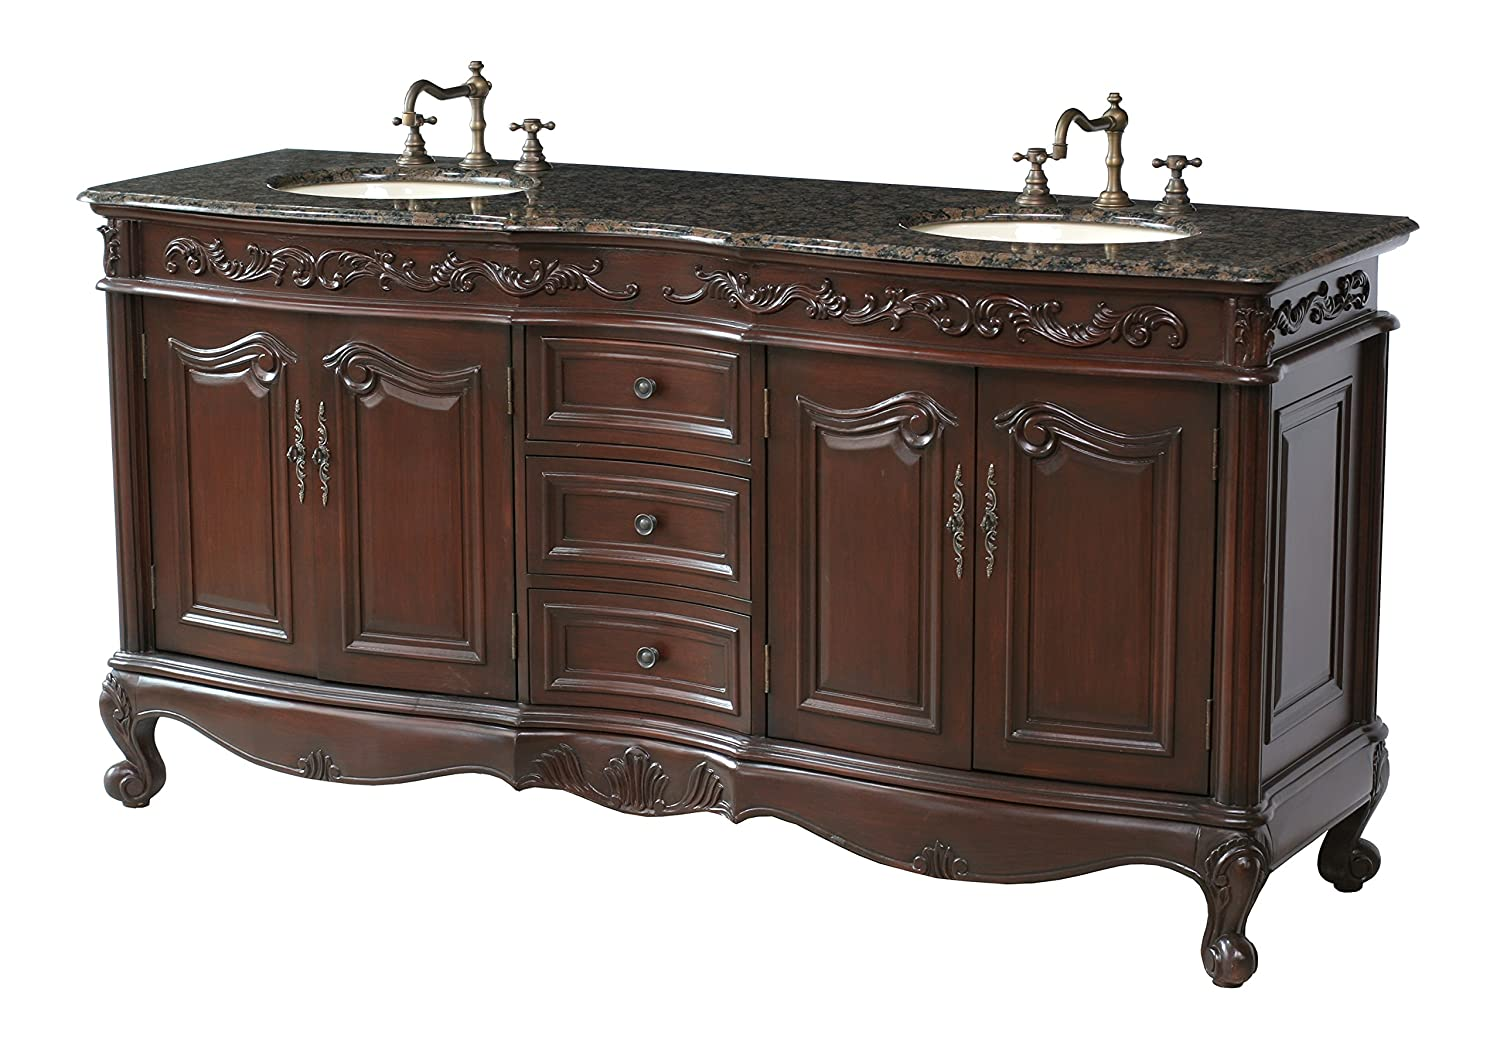 5 foot vanity double sink. Stufurhome GM 3323 72 BB Inch Saturn Double Vanity In Dark Cherry Finish  With Granite Top Baltic Brown White Undermount Sinks Bathroom Vanities